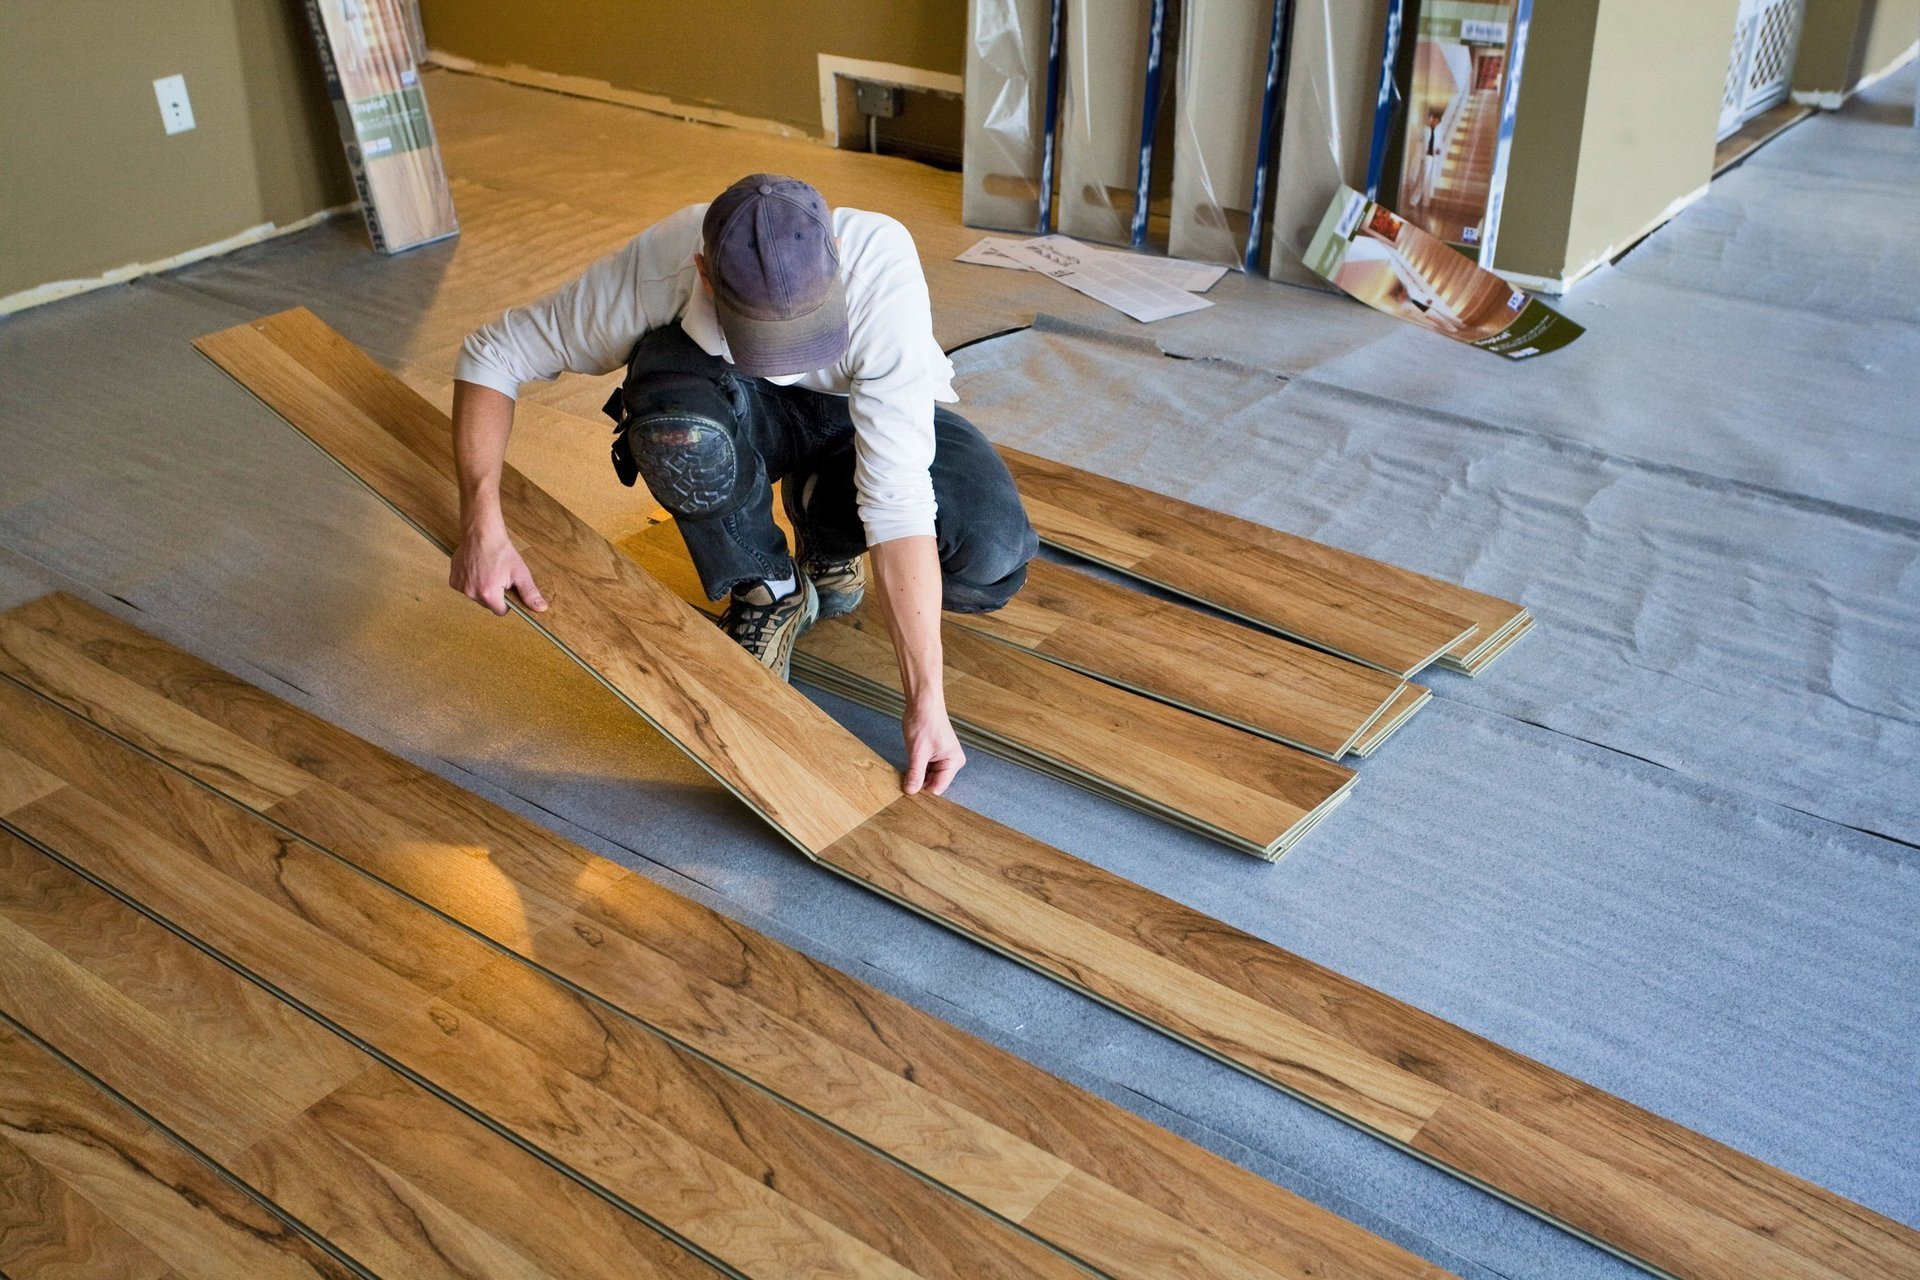 Laying Hardwood Floors In Different Directions Of American Floor Service Hardwood Flooring Fairfield Ct Inside Hardwood Flooring